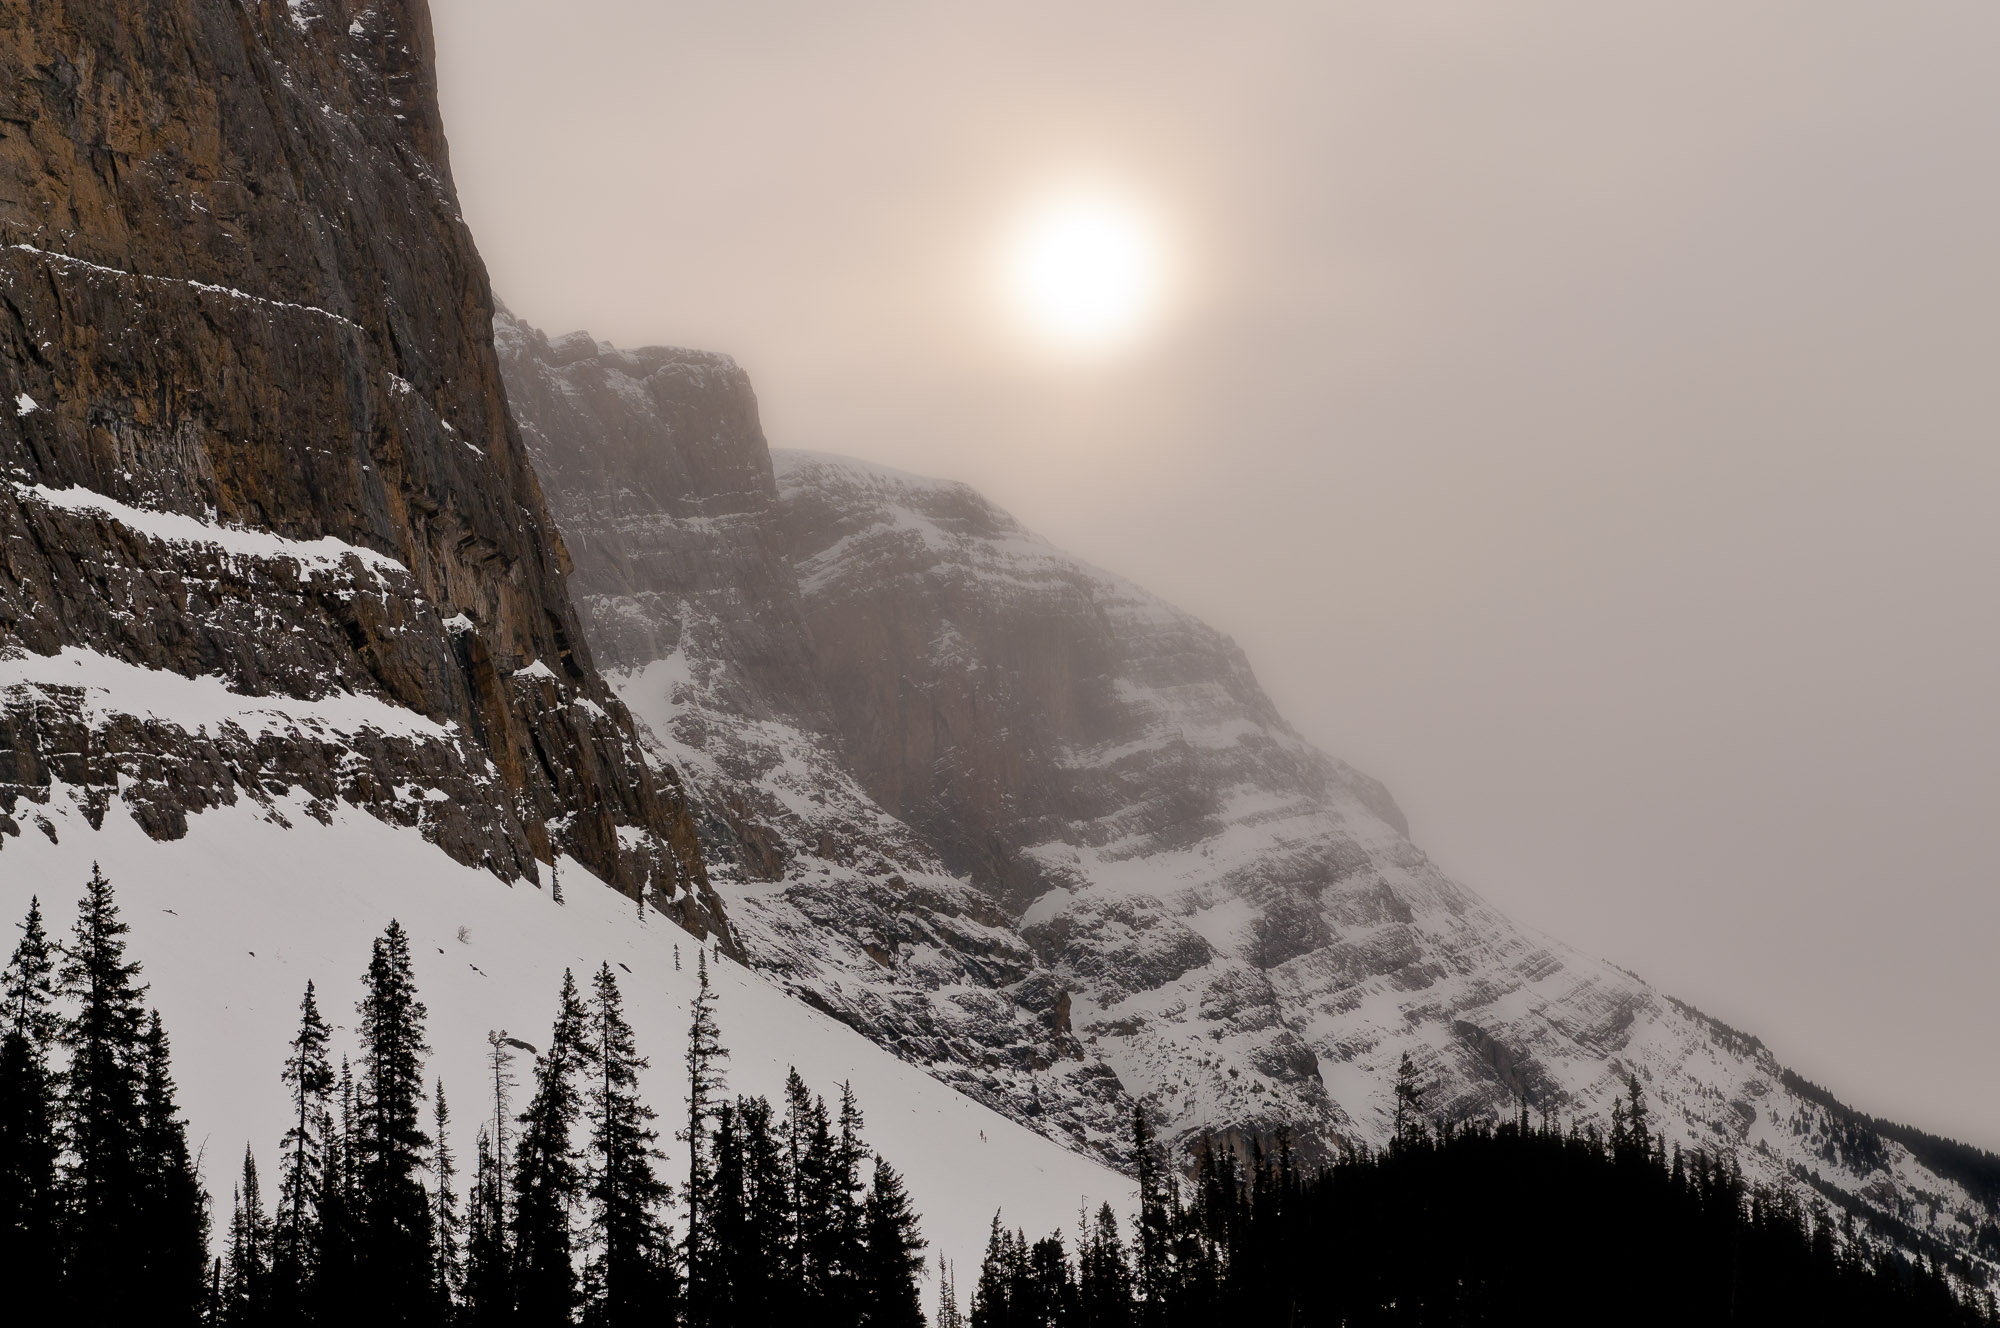 Pale sun and cliffs - Banff National Park, Canada